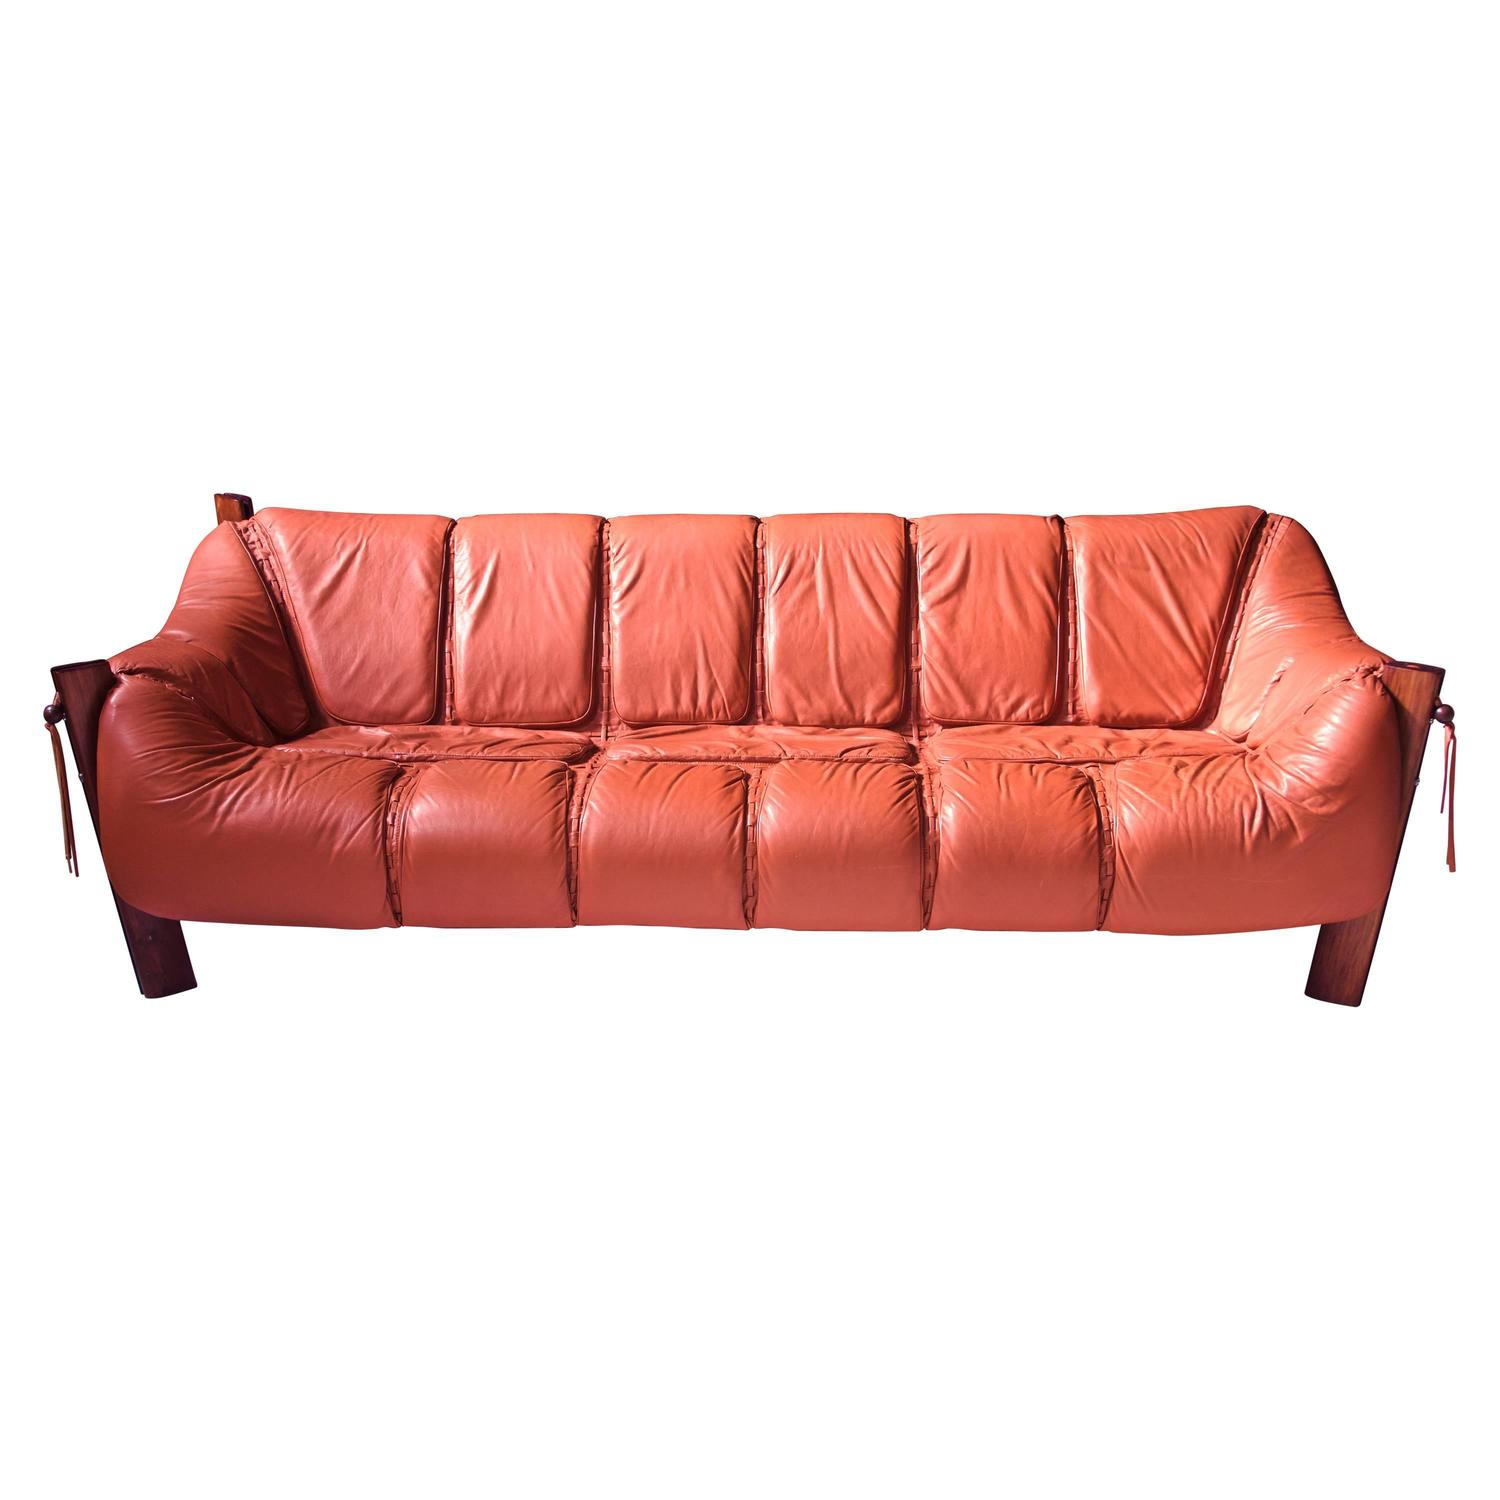 Percival Lafer Furniture Chairs Sofas Tables & More 105 For